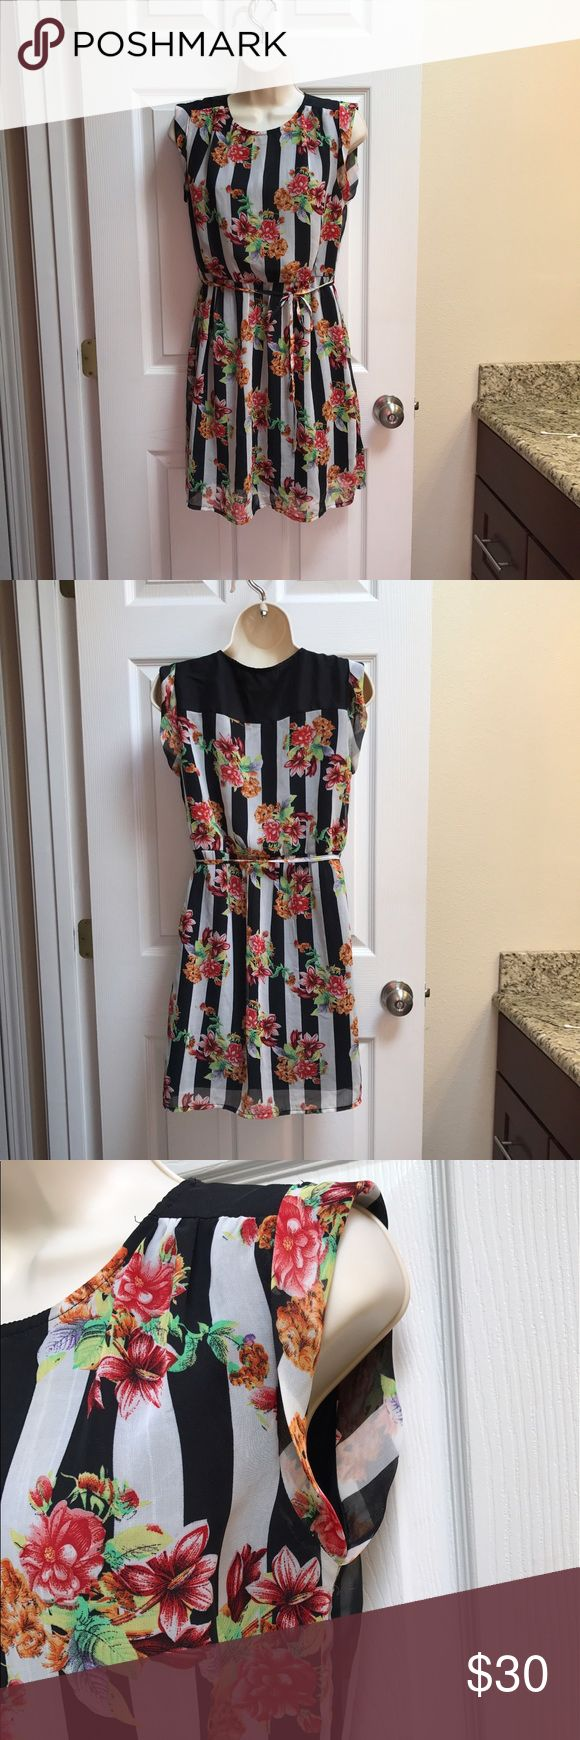 Tulle Striped Dress Beautiful floral Capped Sleeve dress! Worn once! Perfect summer or tea party dress! Tulle Dresses Midi